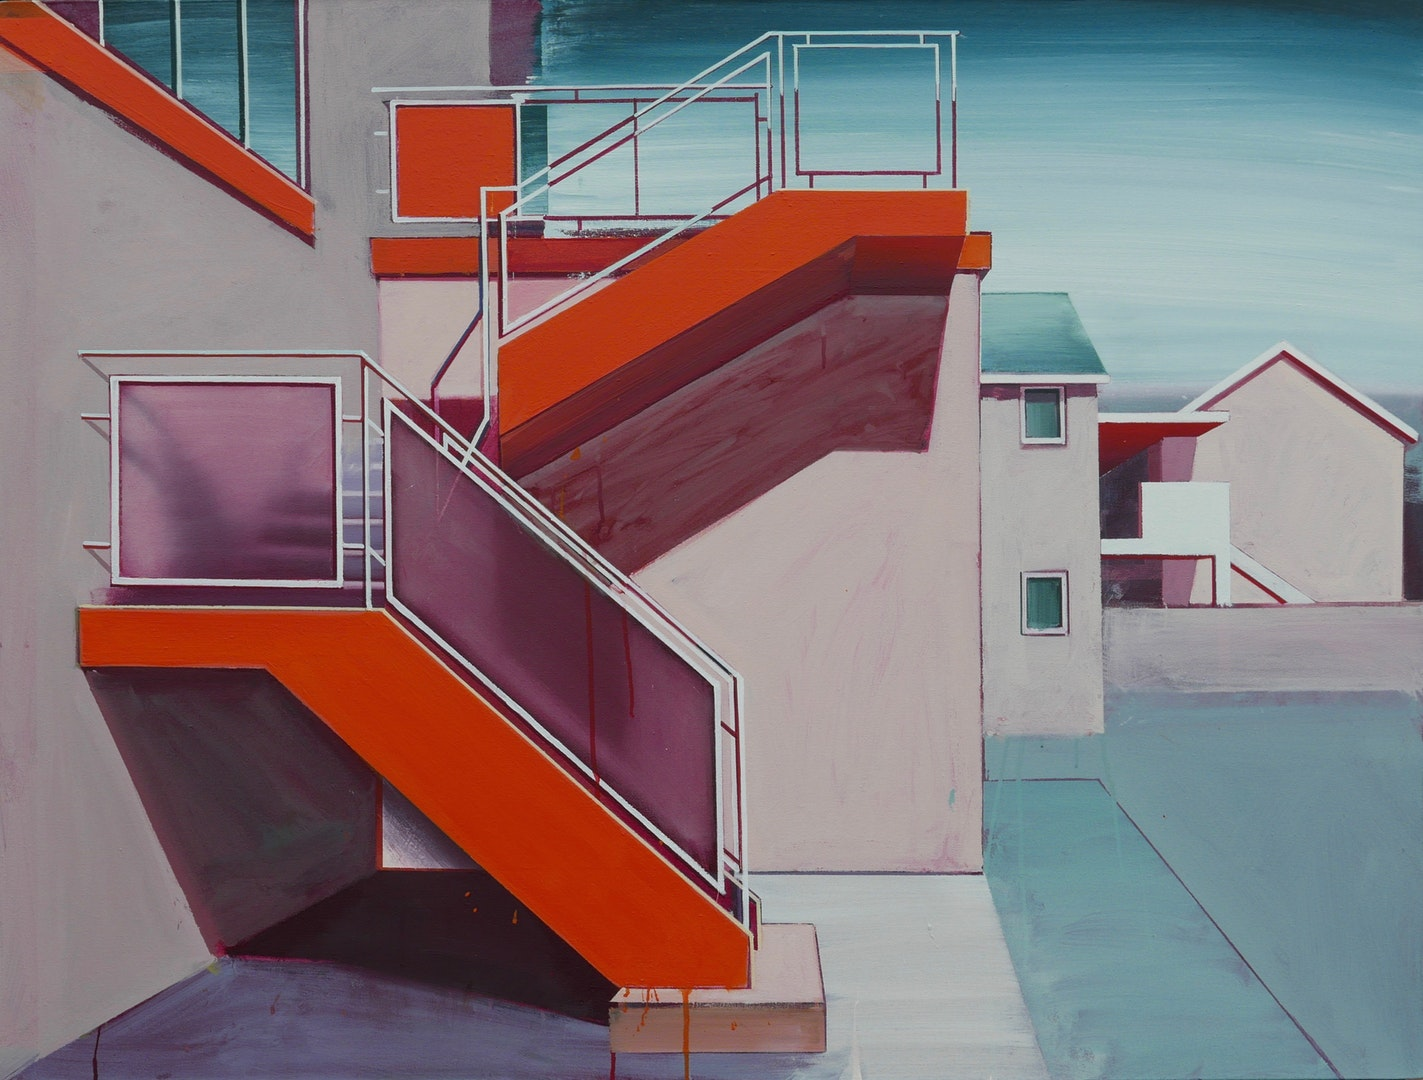 'Orange Stairway', Paul Crook, Acrylic on canvas, 125 x 100 cm